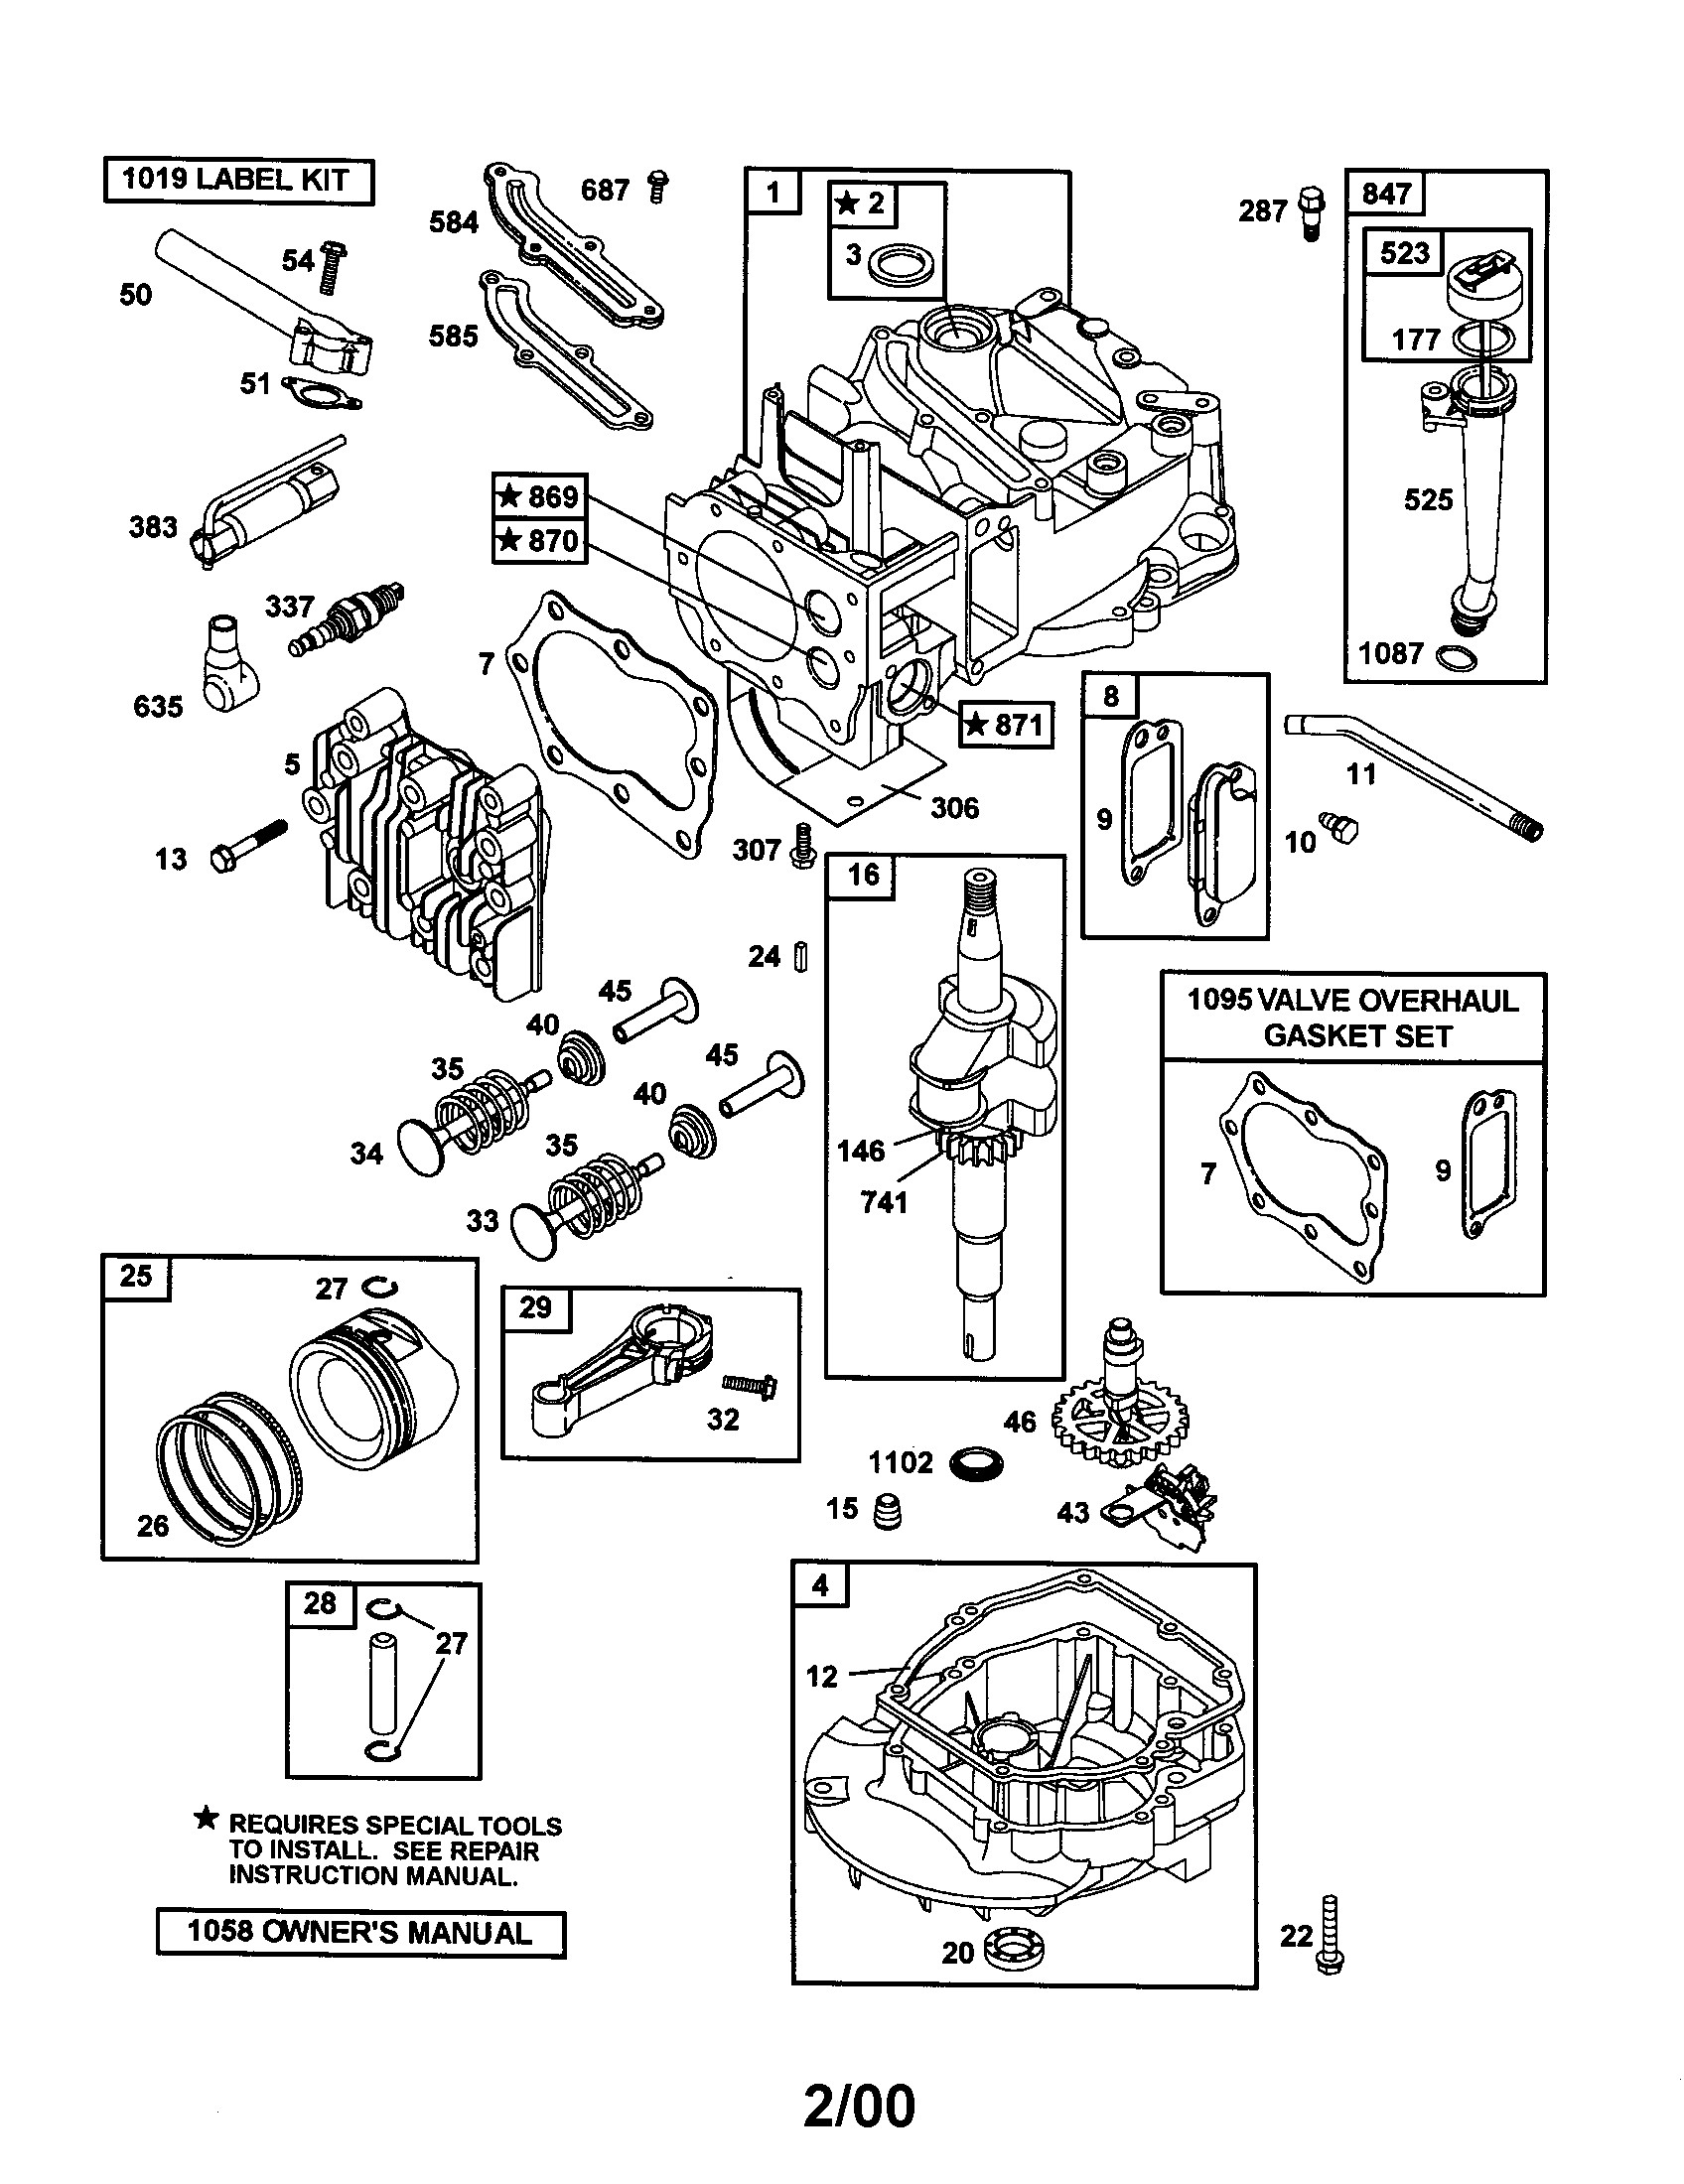 Briggs Stratton Engine Parts And Diagrams 2 My Wiring